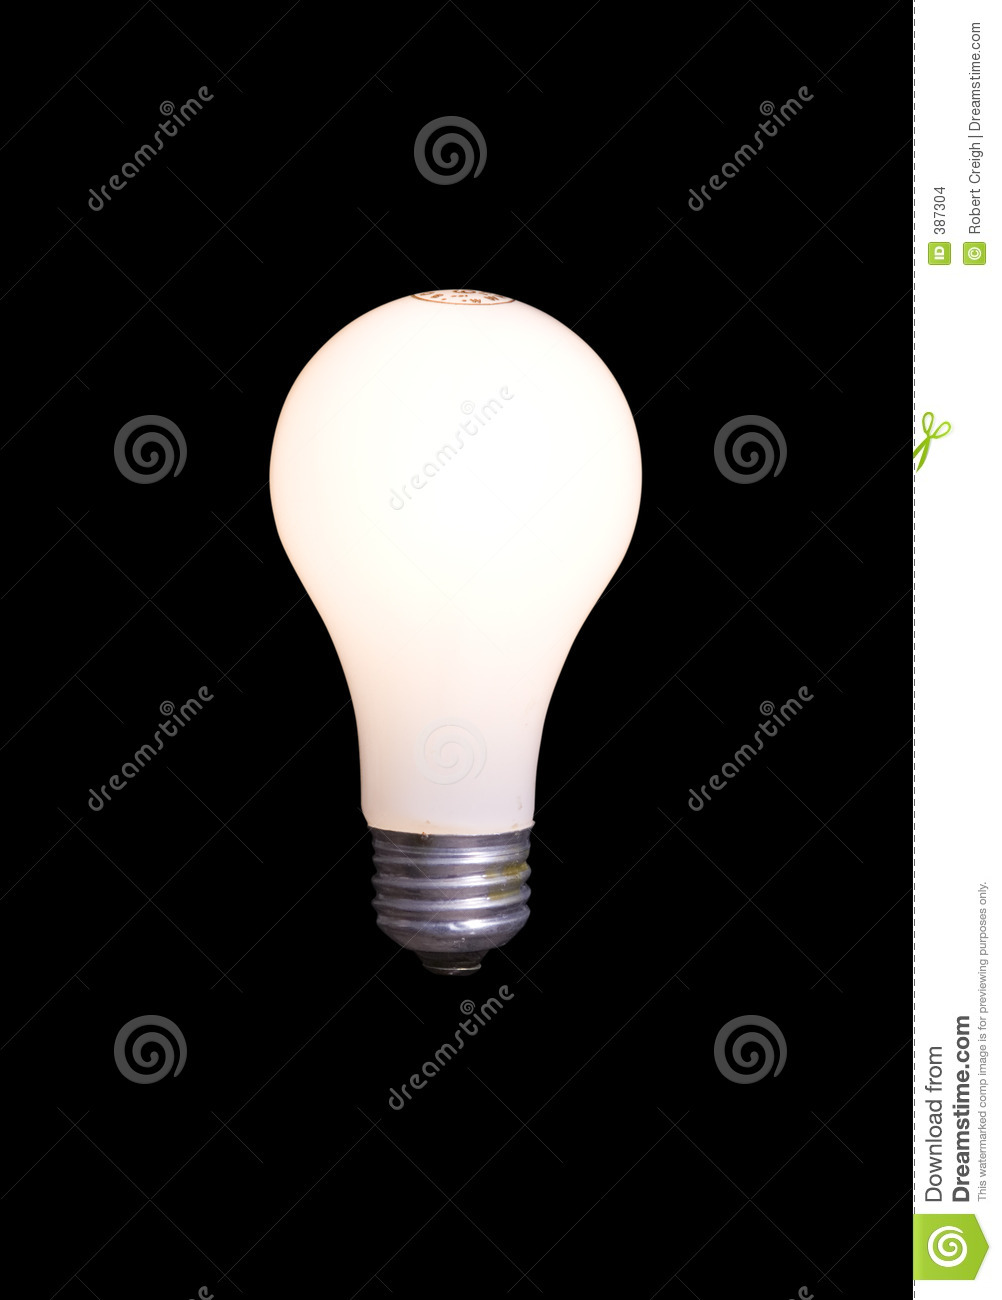 Black bulb clipping isolated light path